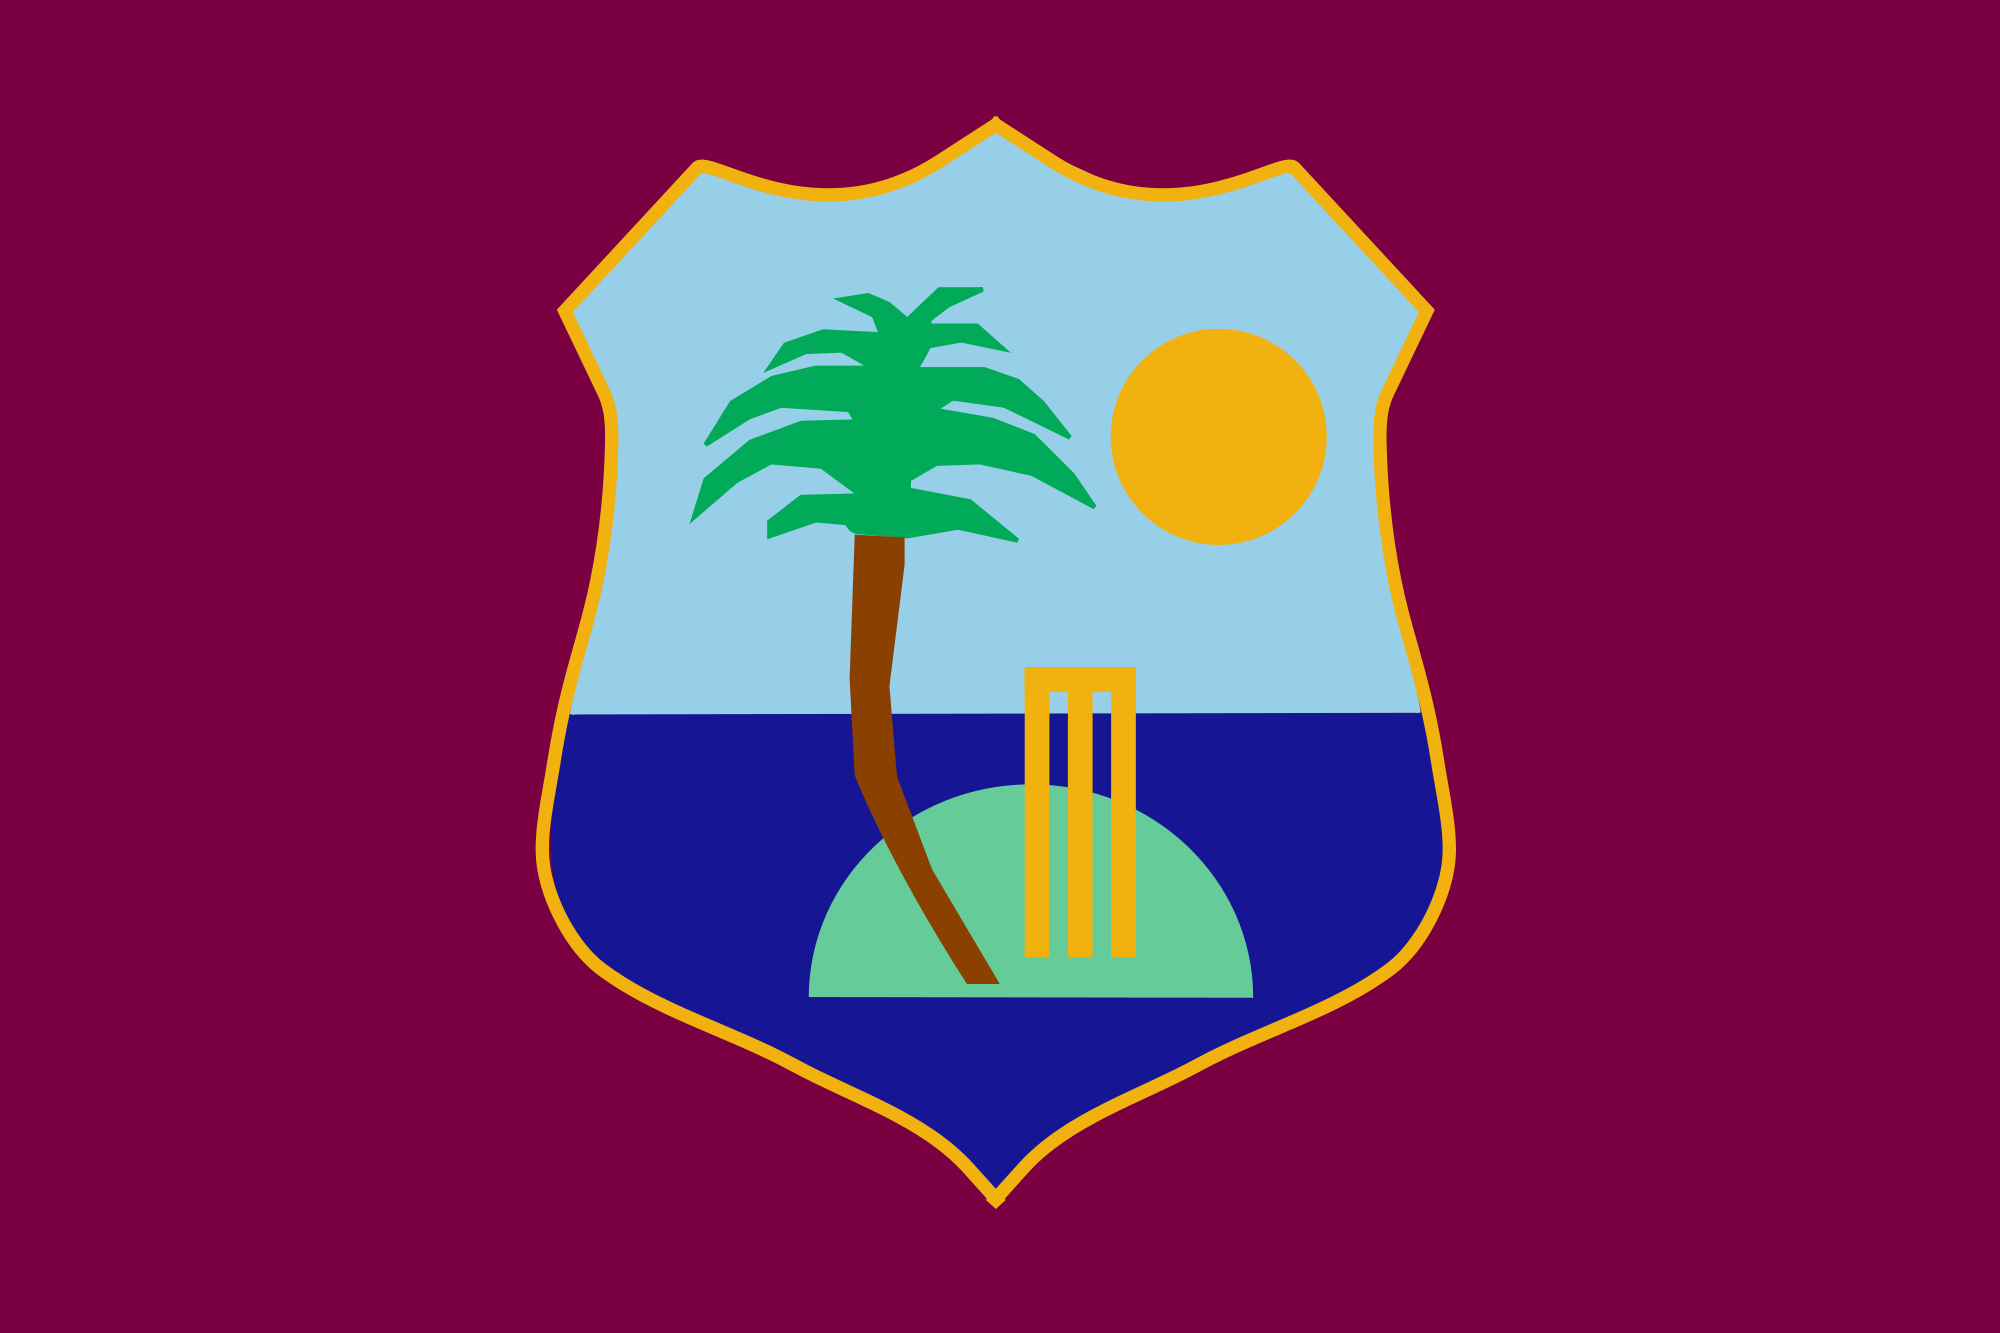 West Indies Cricket Team Image